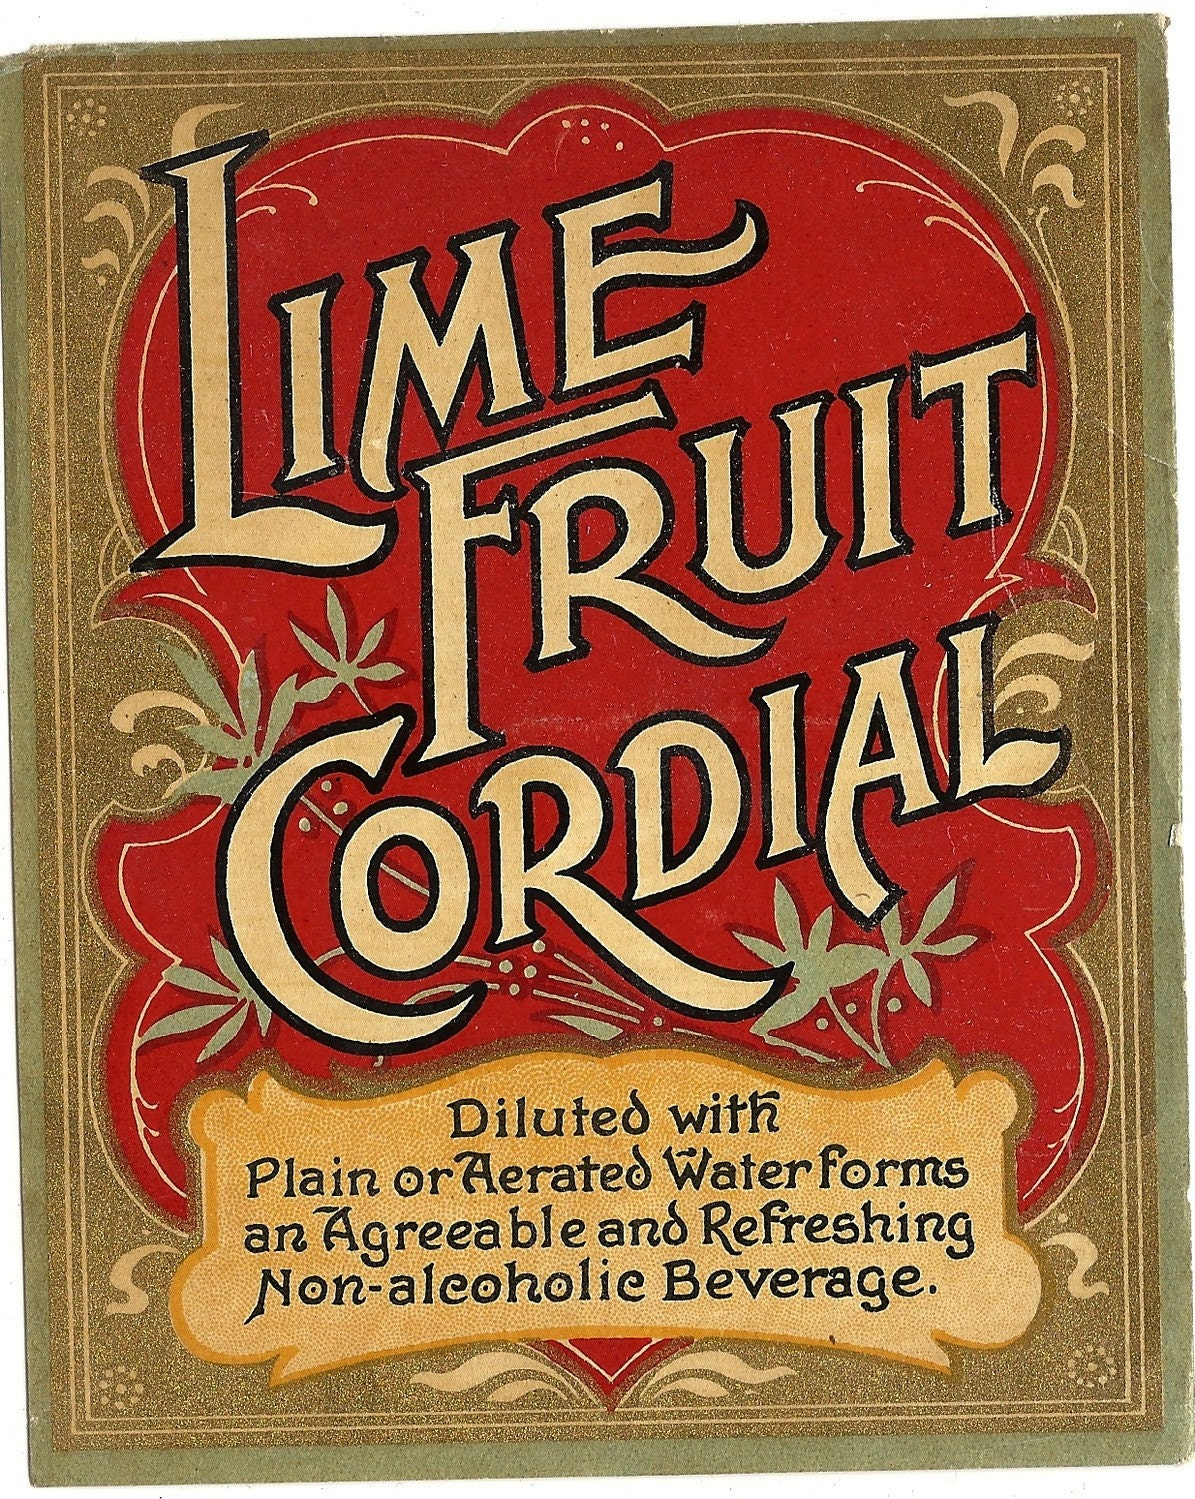 Lime Fruit Cordial Label circa 1800s by thecollectiblechest